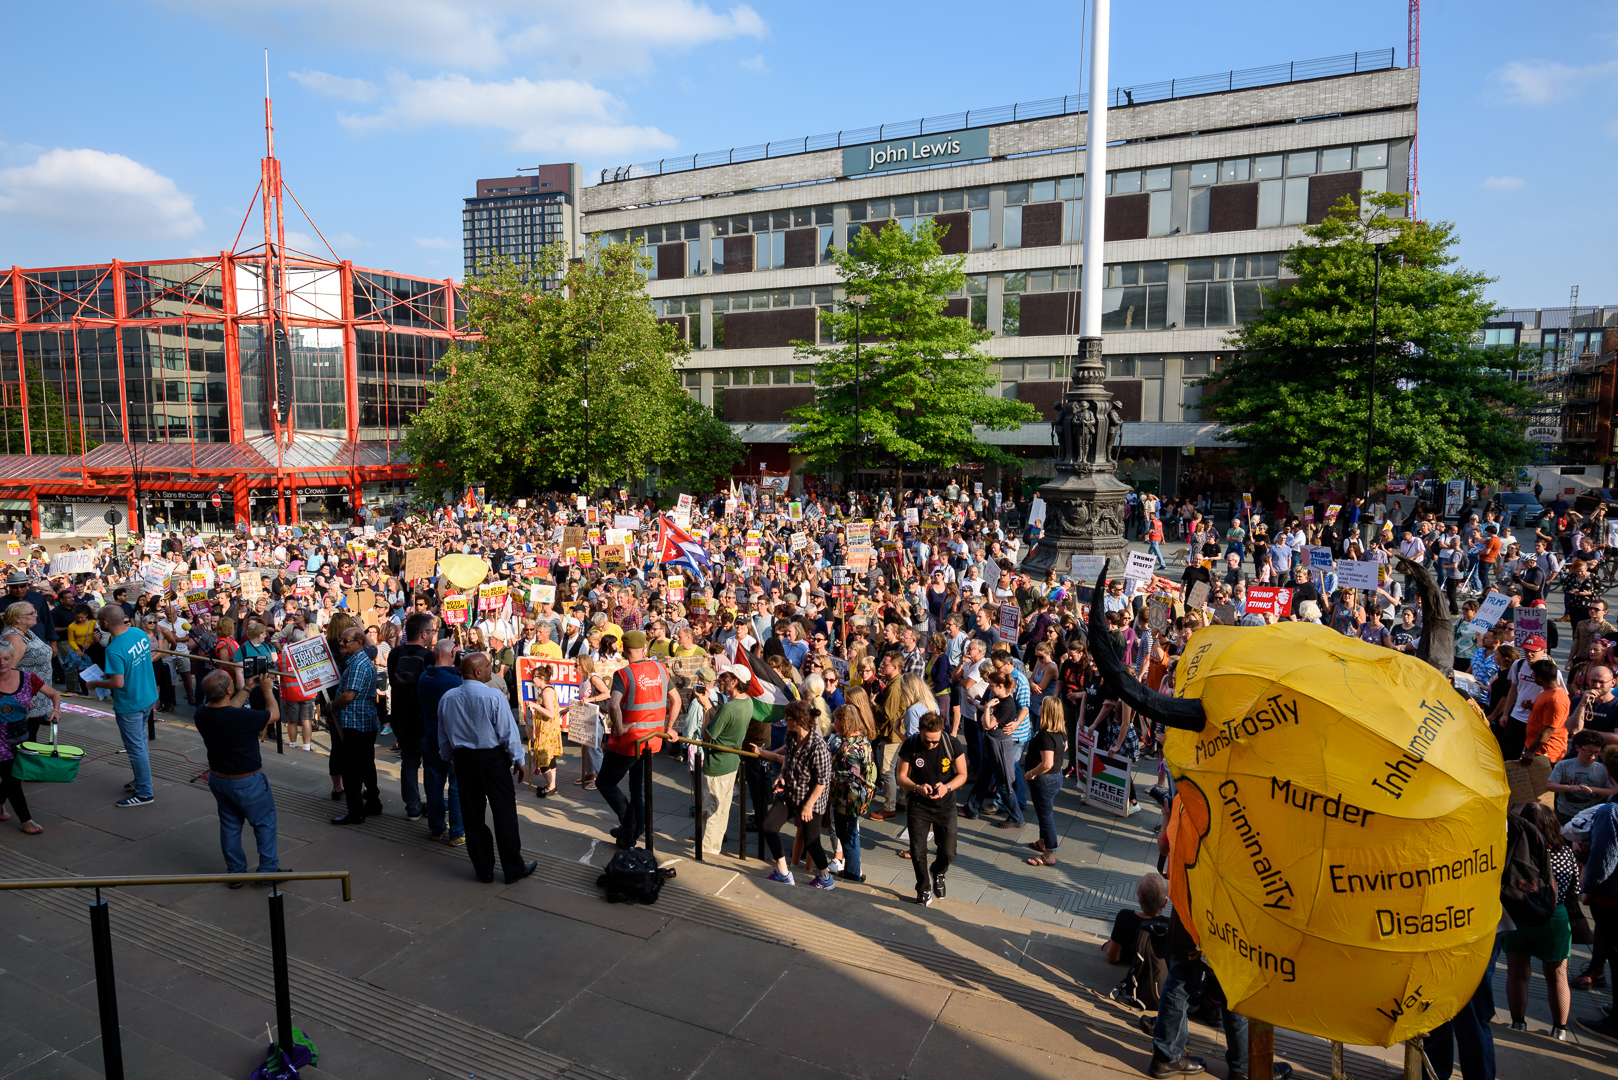 Sheffield Anti-Trump rally July 2018 Blog02.jpg